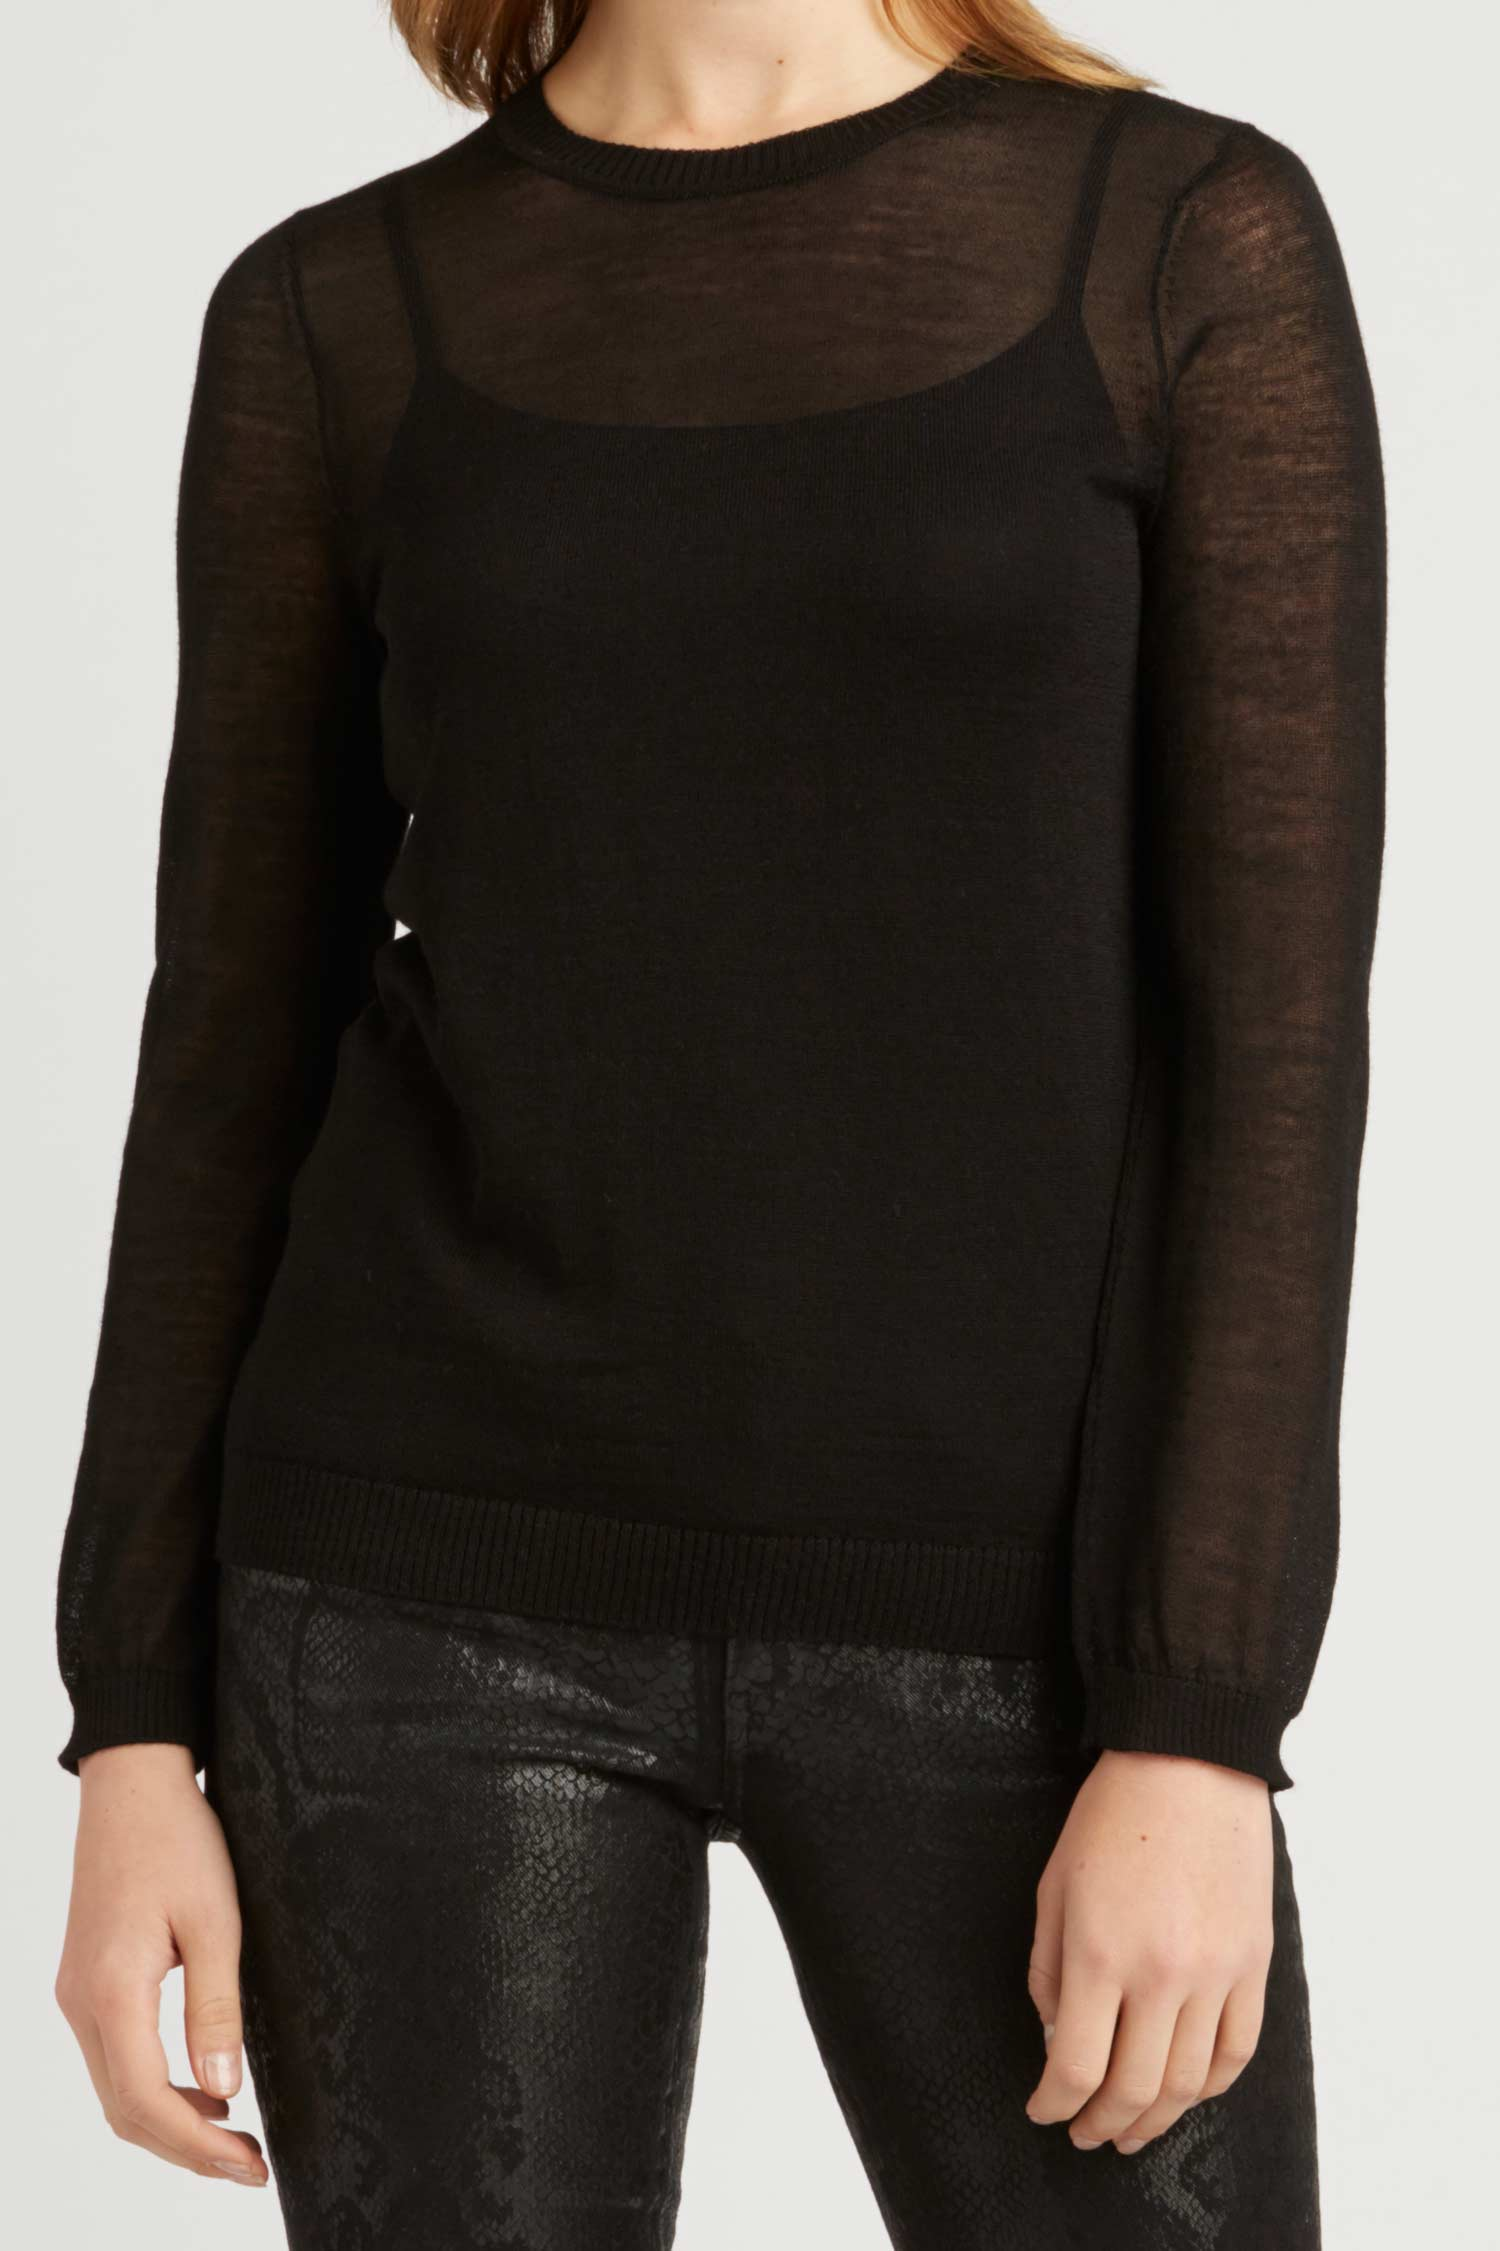 Womens Top - Sheer Alpaca Silk Crew Neck - Black